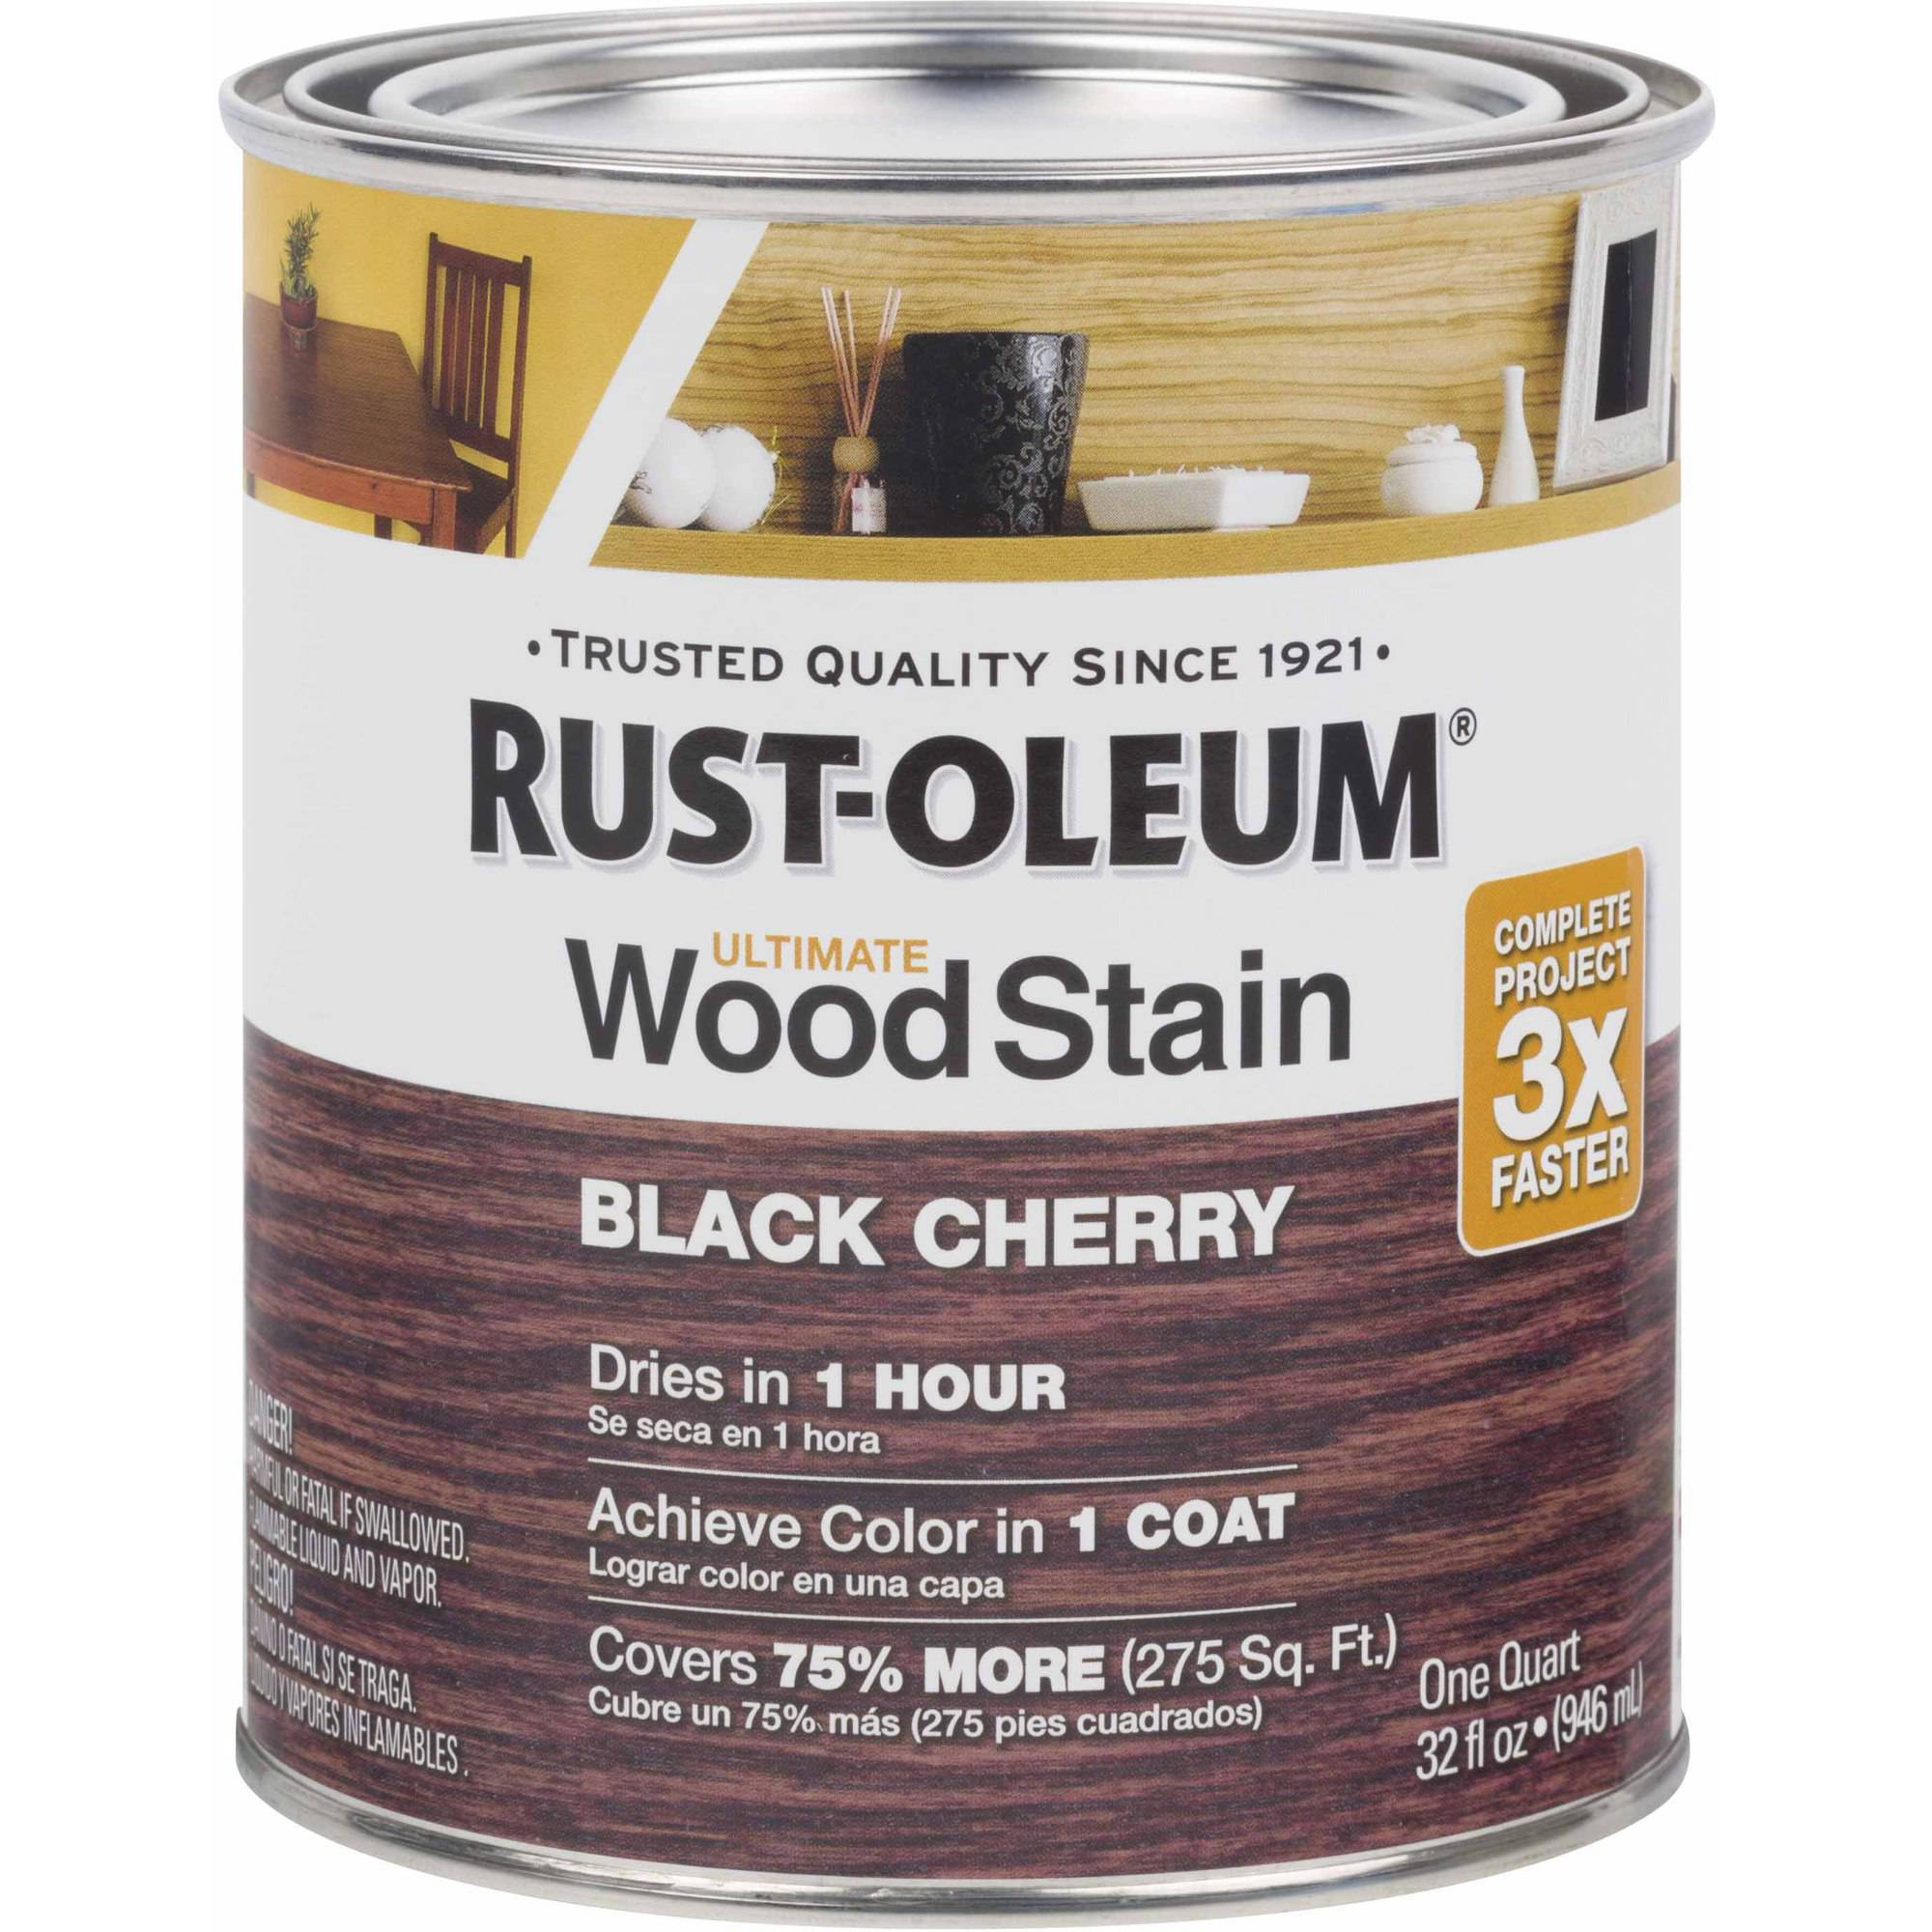 Rust-Oleum Ultimate Wood Stain Quart, Black Cherry